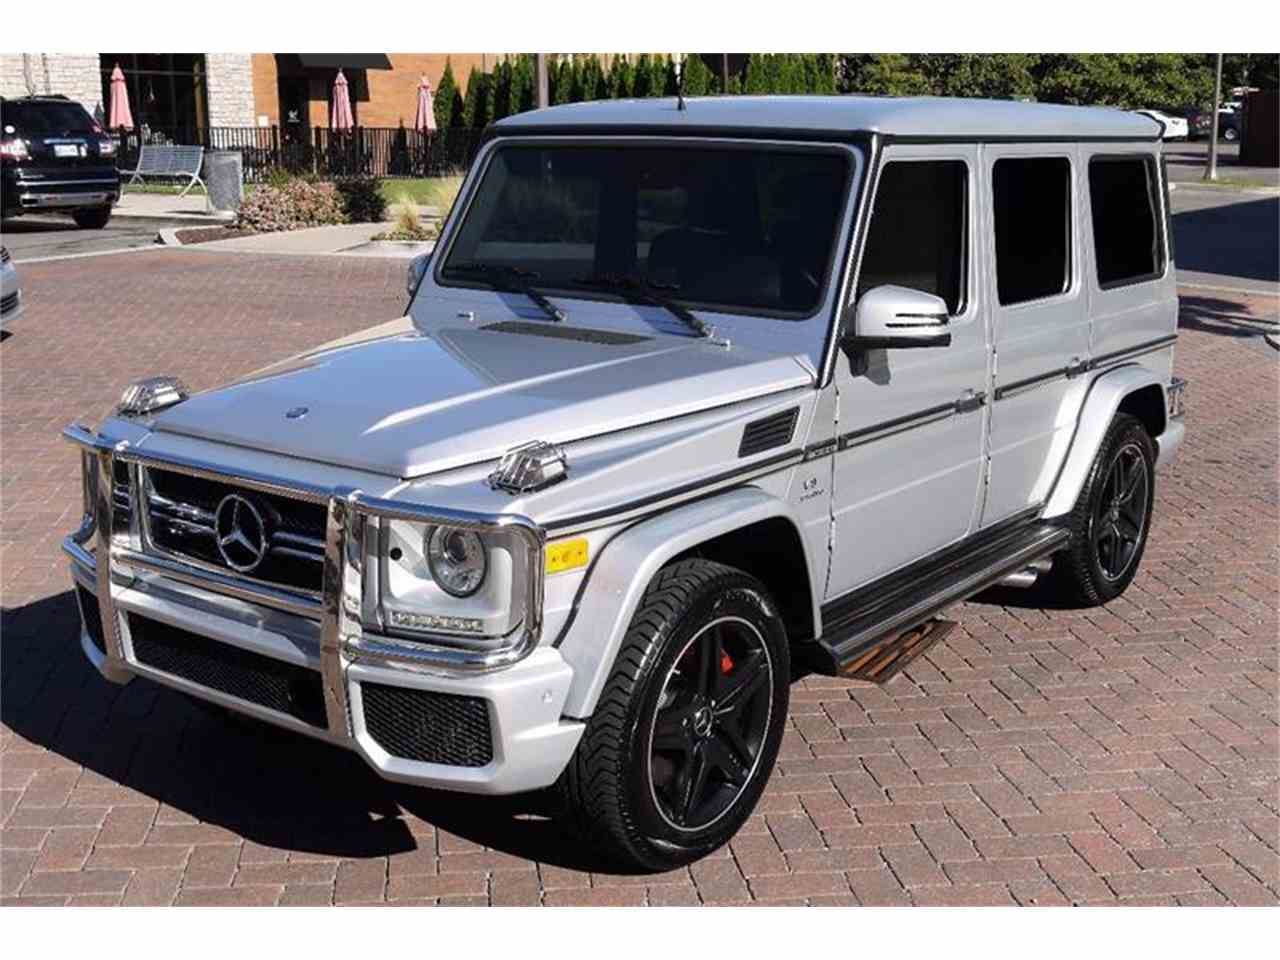 Large Picture of 2013 Mercedes-Benz G-Class located in Brentwood Tennessee Auction Vehicle Offered by Arde Motorcars - M2NF